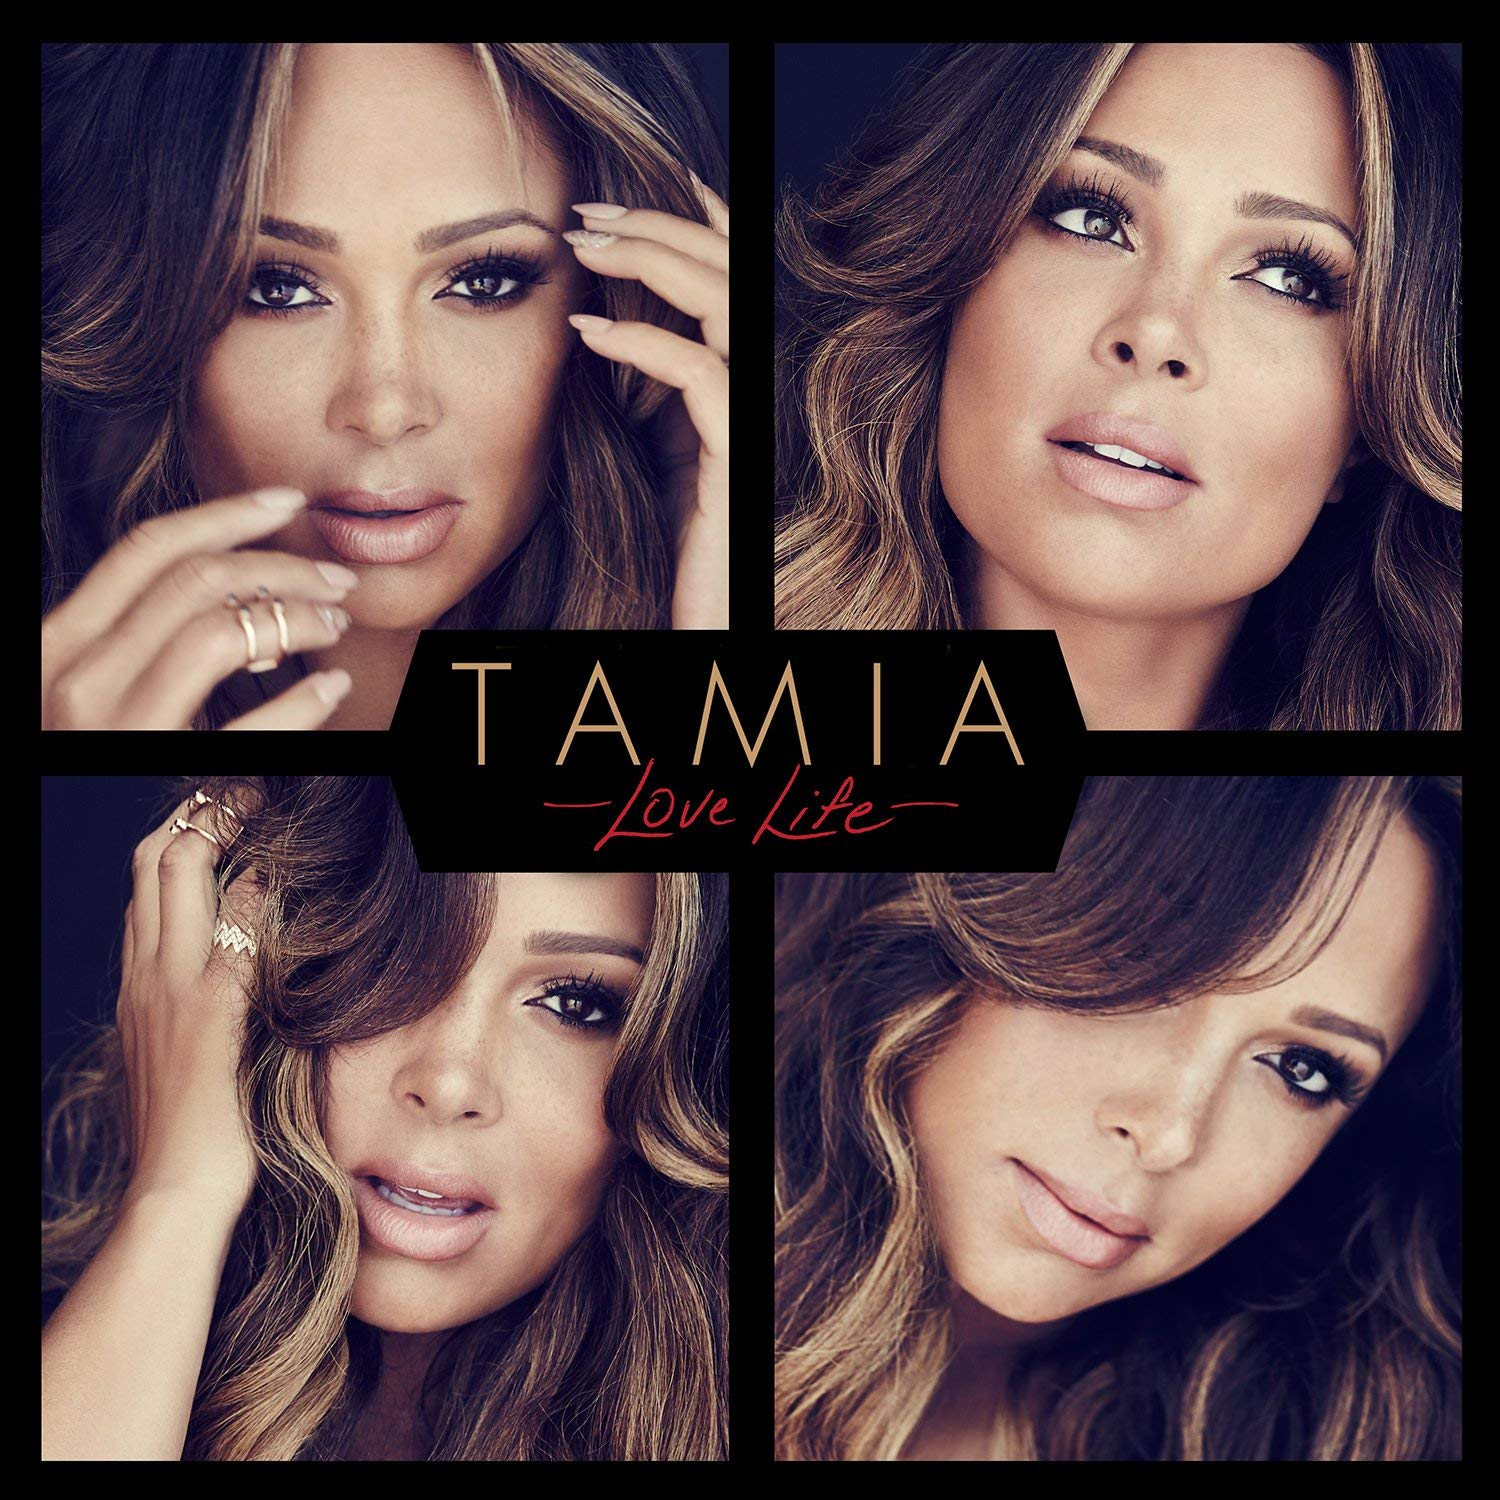 Stuck With Me - Tamia - Tamia has been my favorite singer since I heard her sing Slow Jams in the 90s. I've been fortunate enough to see her in concert and her voice is so amazing and she's a great writer. She brings hope to me on love with her lyrics. Really just a great artist and vocalist and I can't wait to see her again!